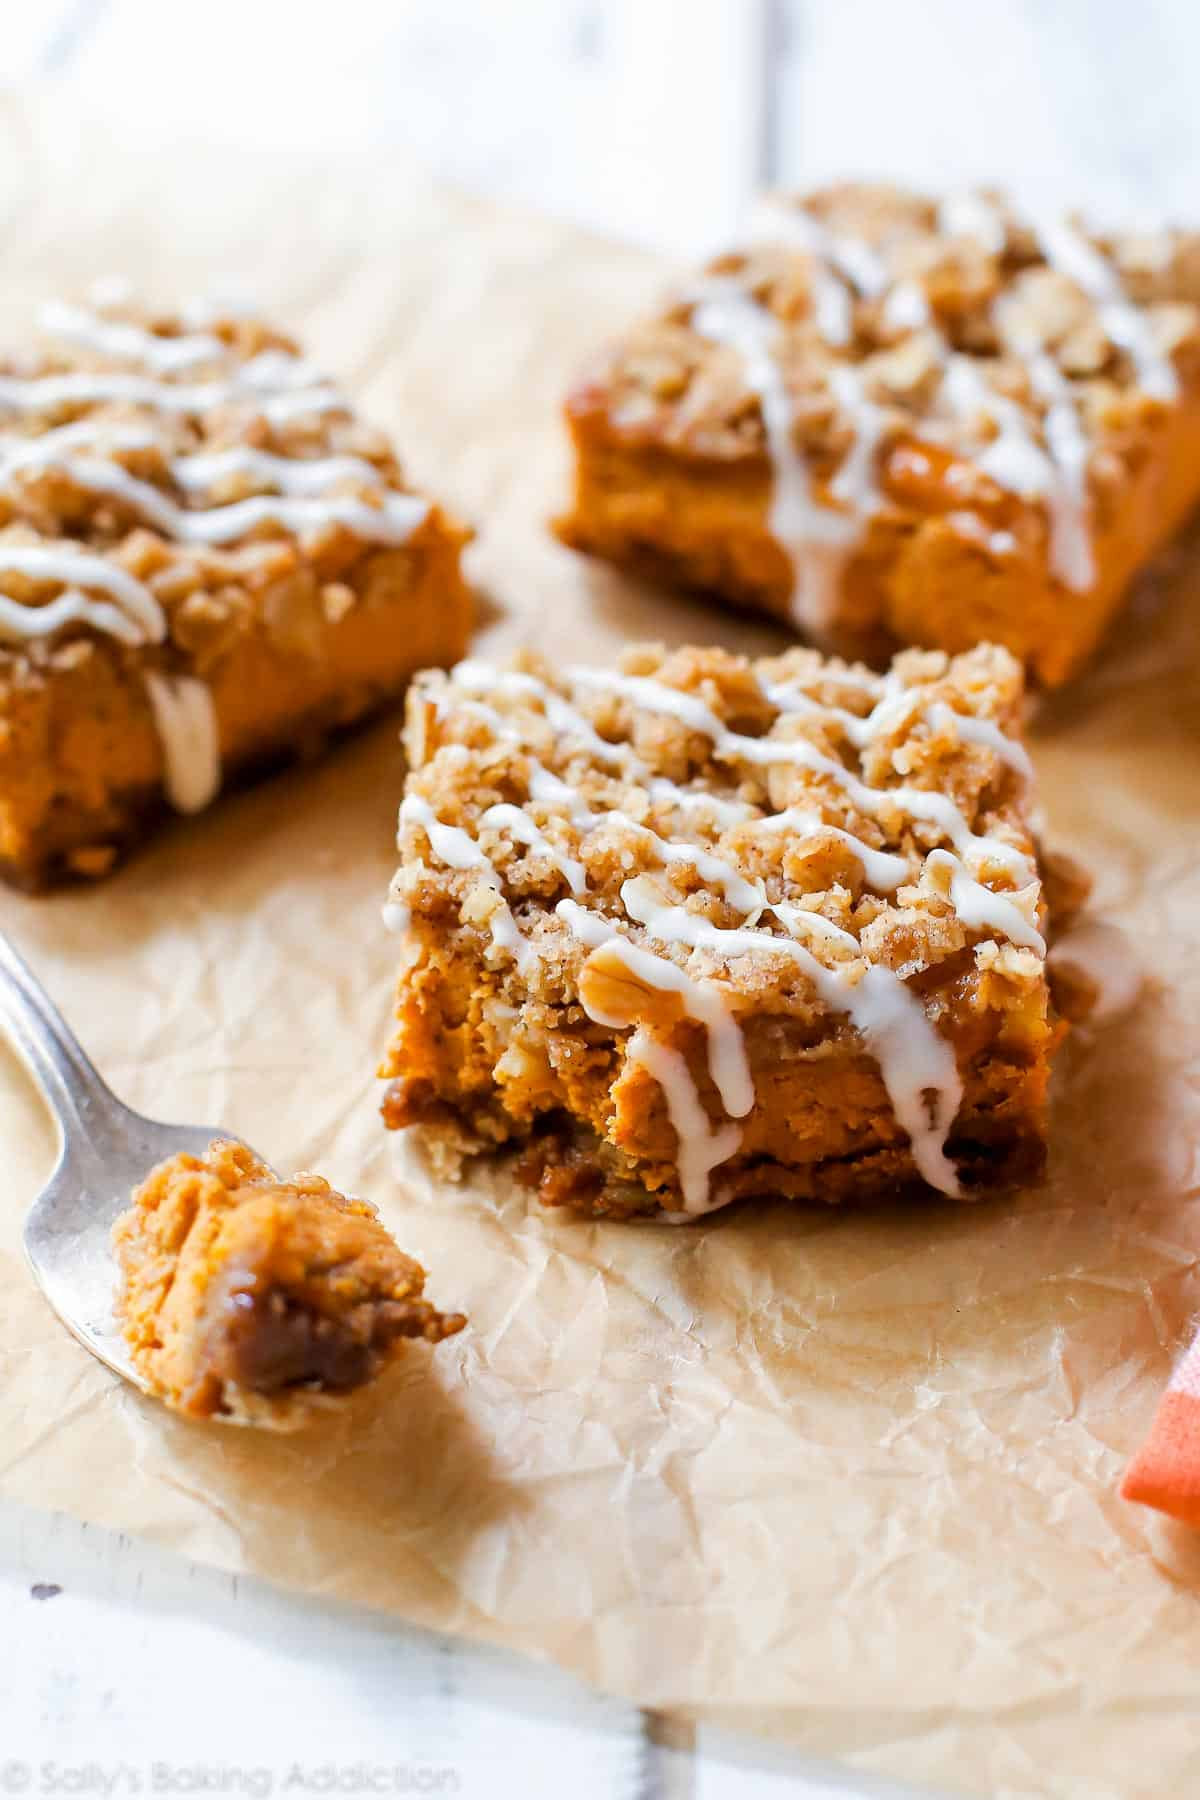 Instead of pumpkin pie this season, try my pumpkin streusel bars. With a gingersnap crust and brown sugar streusel topping, everyone will want seconds! sallysbakingaddiction.com